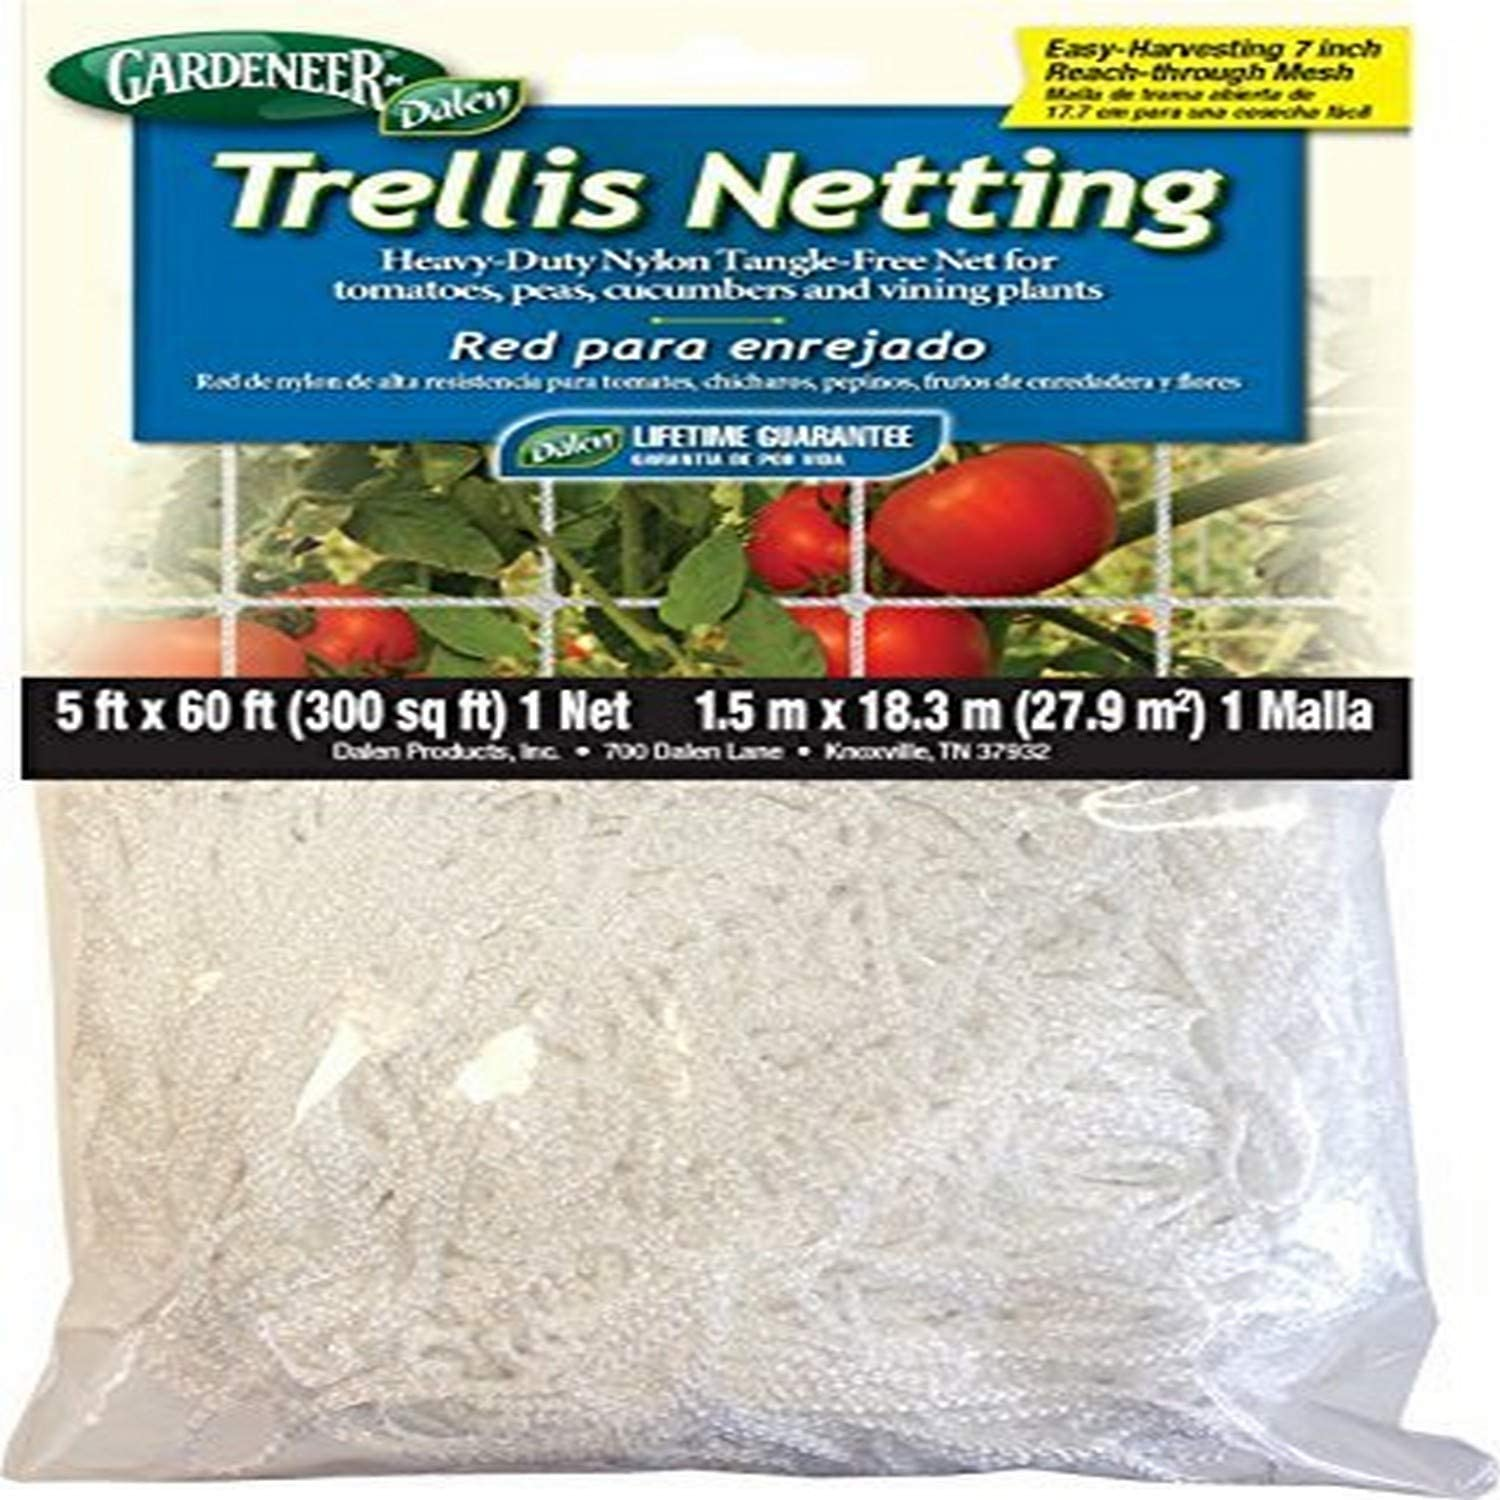 Gardeneer by Dalen Plant Growth Trellis Netting – Nylon Mesh Gardening Net for Vertical Growing Crops – Vegetables & Fruits Cultivation (5' x 60')